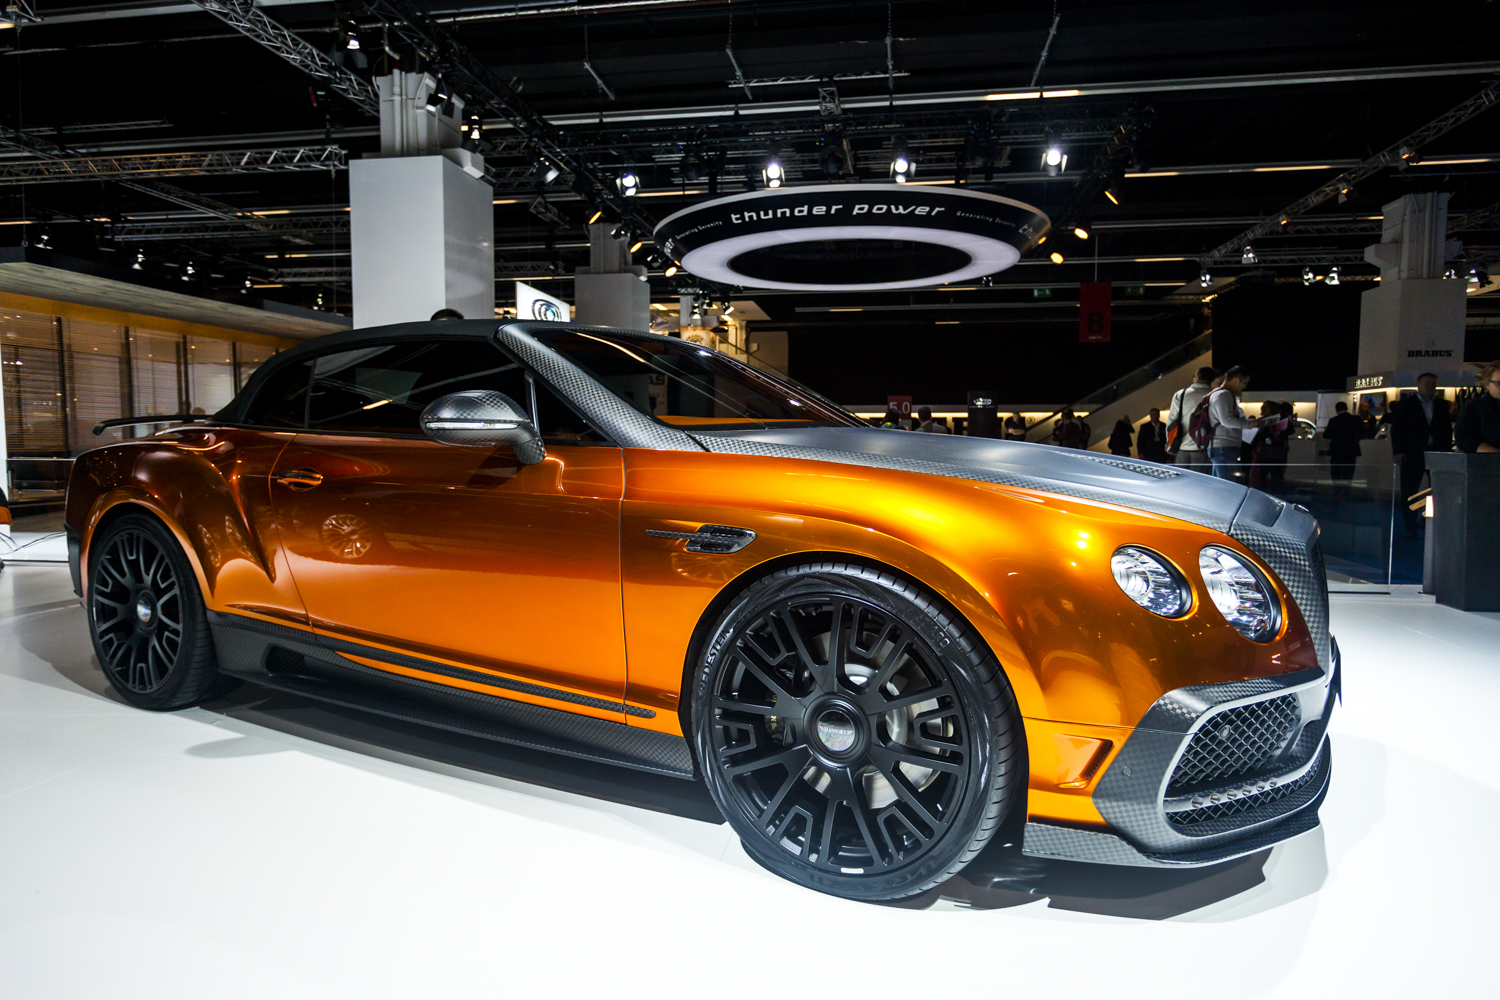 bentley continental gt chrome with Iaa 2015  Mansory Bentley Continental Gtc on Chrysler 300 2012 With 22 Inch Rims F72d5fe4e6a99aa3 in addition 22 together with 6508867469 as well 17 likewise 24.